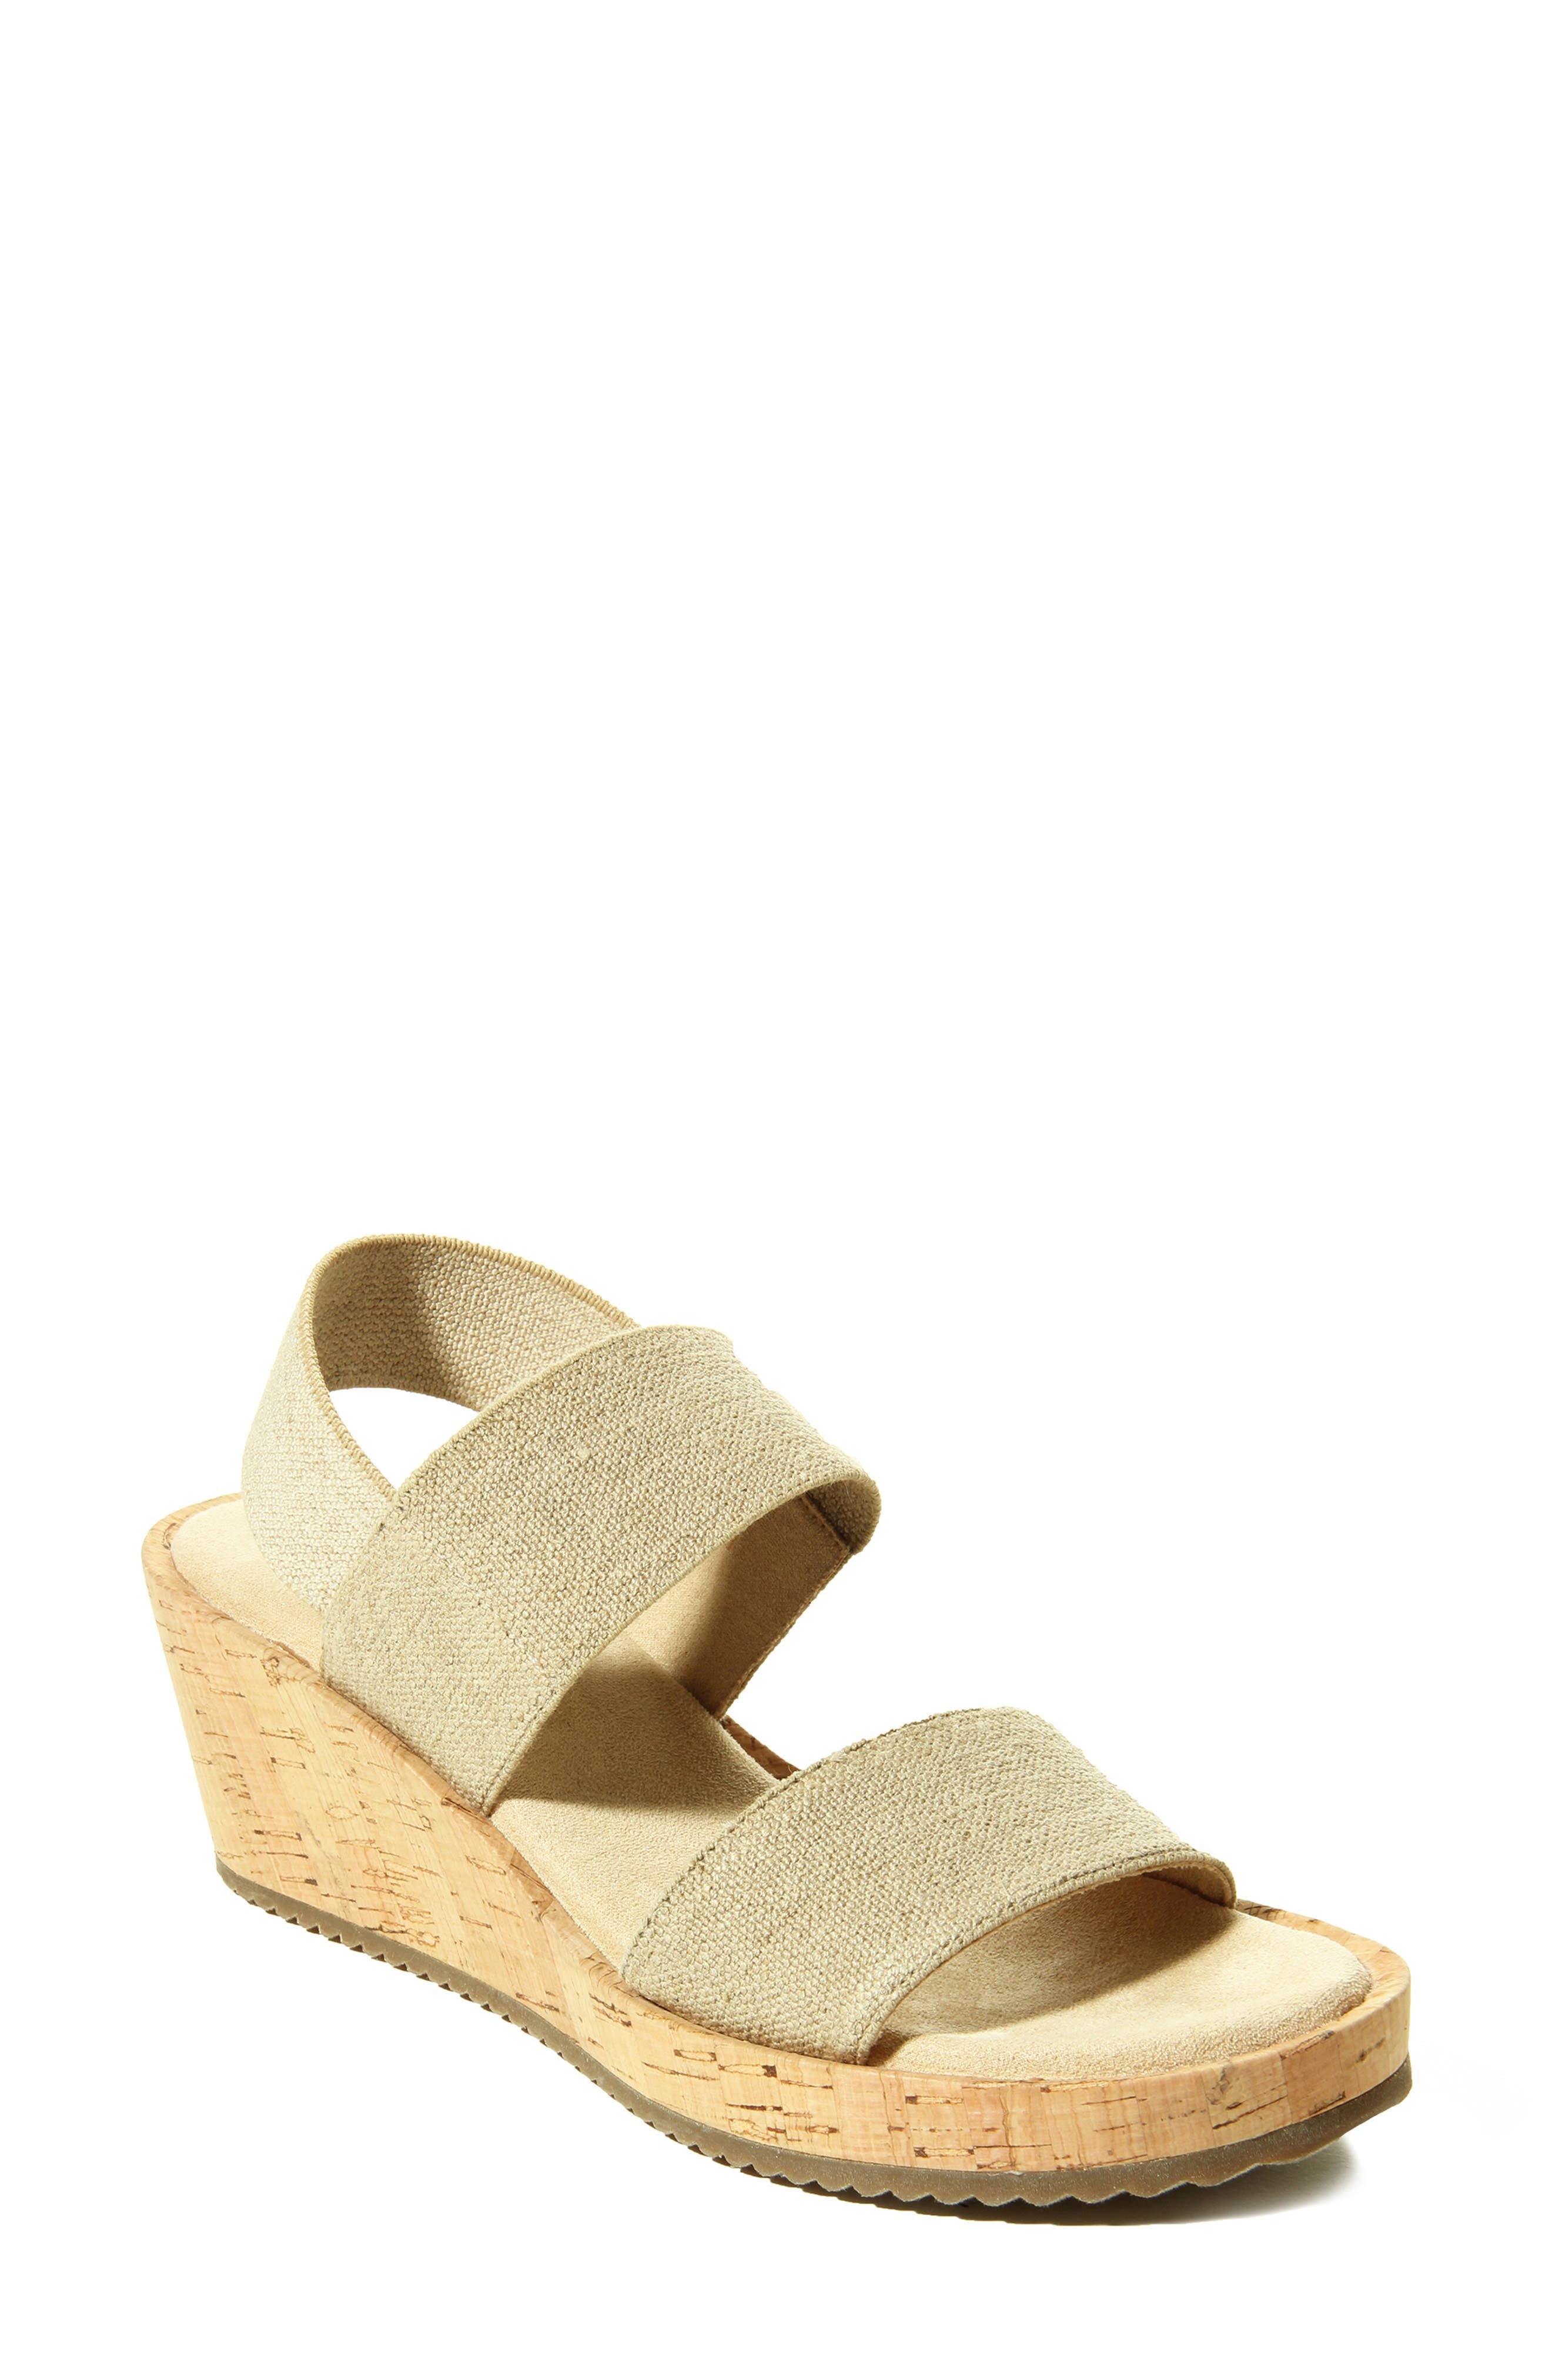 Stretchy elastic straps ensure a custom, comfortable fit for this breezy slingback sandal featuring a cushy footbed atop a cork-wrapped platform wedge. Style Name: Vaneli Chila Wedge Sandal (Women). Style Number: 6007464. Available in stores.